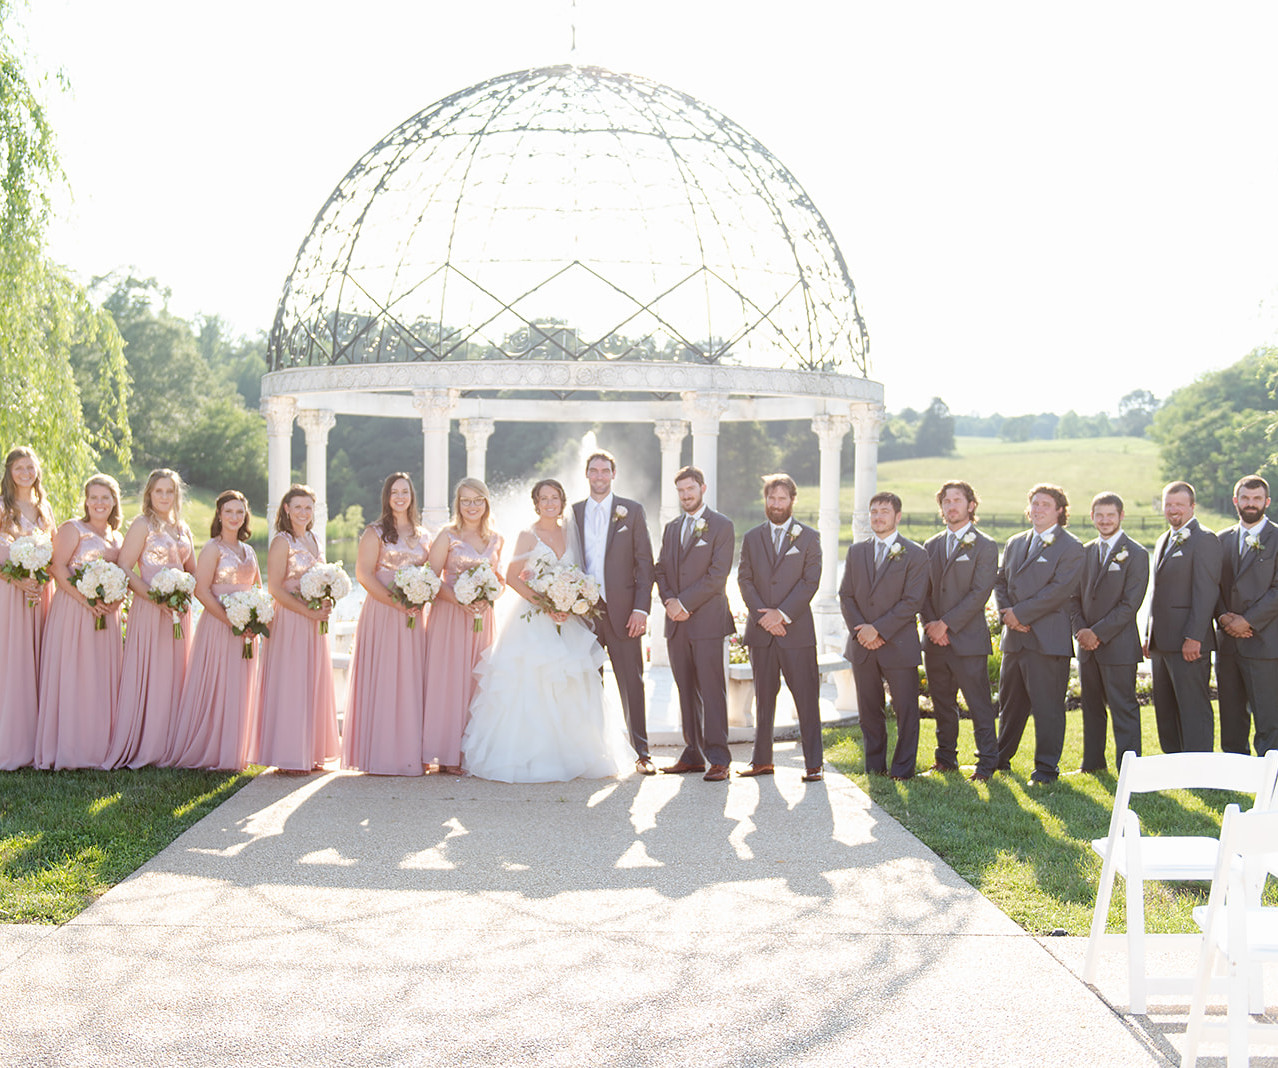 Lindsey+Michael_Married_awg_rest_Scottsv